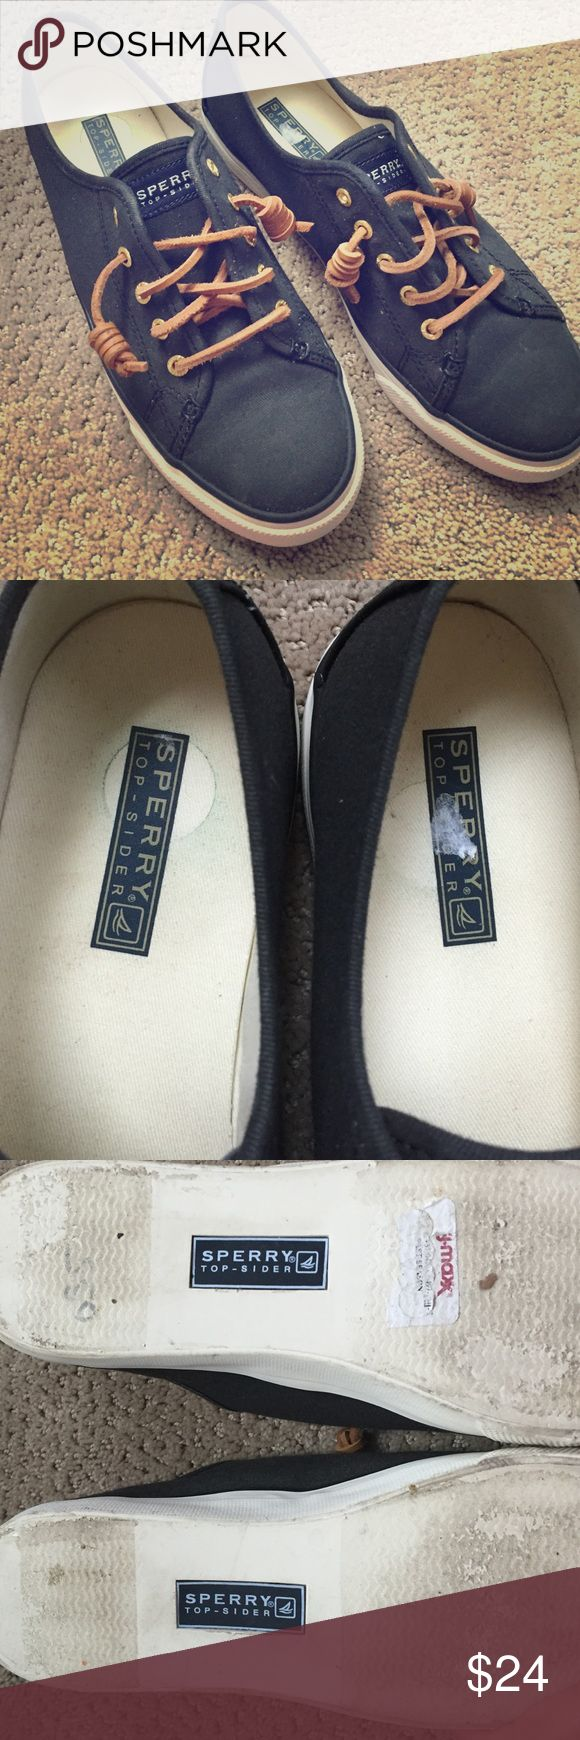 S 8 Black Sperry Top-Siders- worn once! Purchased these from TJ-Maxx after convincing myself they fit (I'm an 8 1/2...they didn't fit)! Wore for a couple hours, but in great condition. Bottoms have a some wear as indicated in the last pic but their condition is fab! Super comfy- especially if you're an 8!  Sperry Top-Sider Shoes